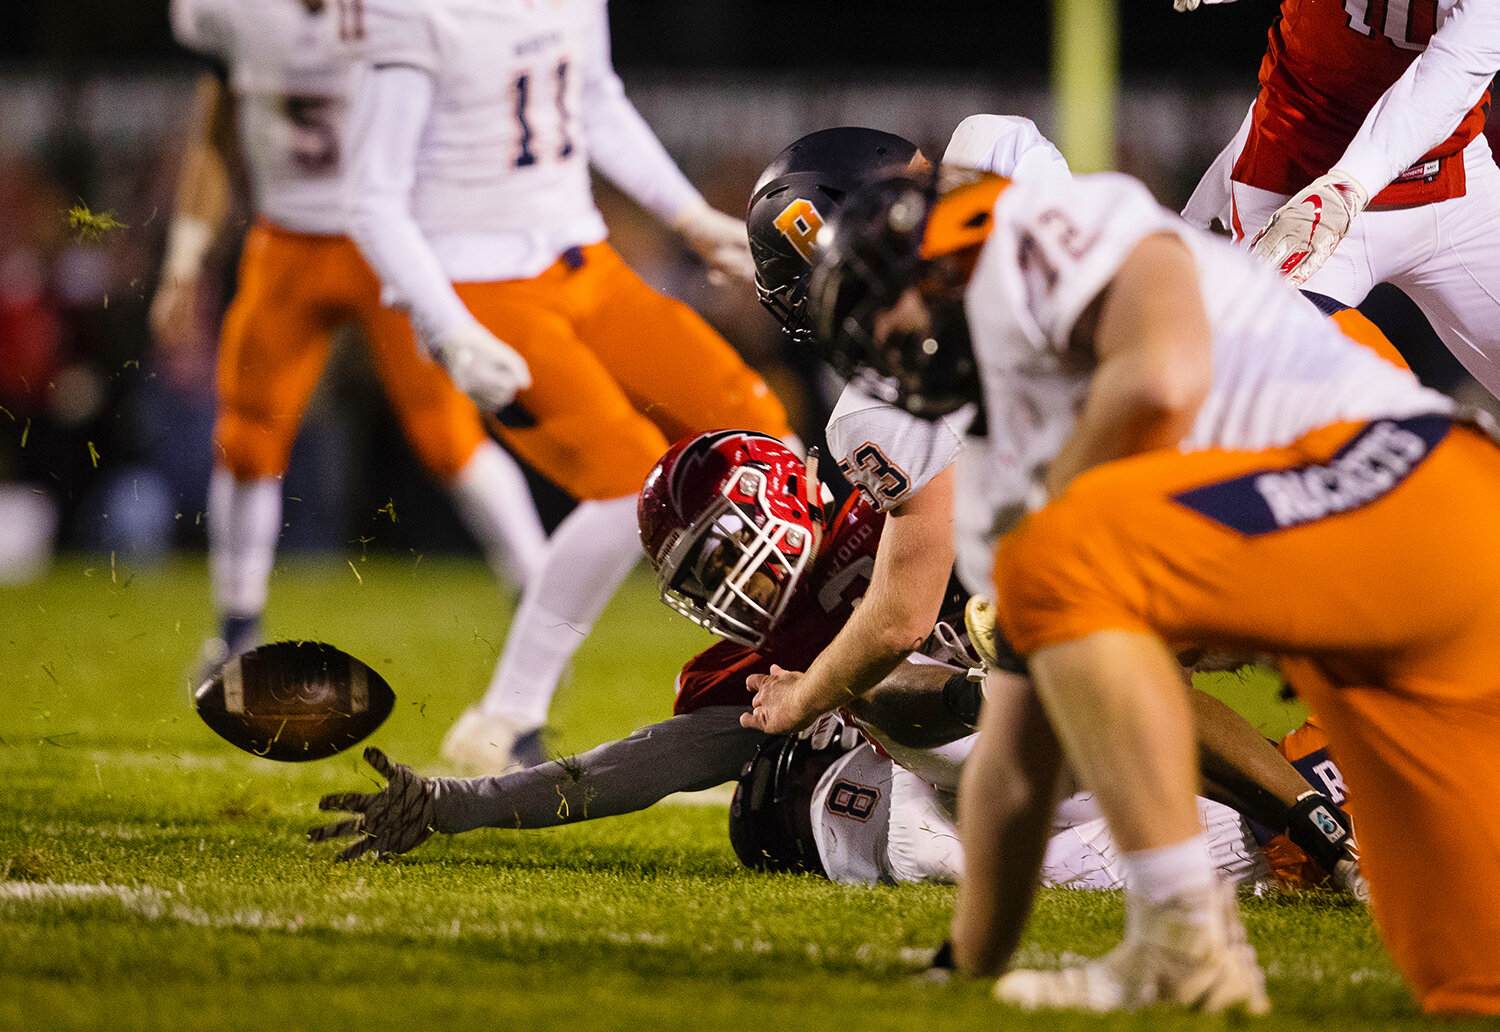 Glenwood's Jason Hansbrough (2)  fumbles the ball on a kick return against Rochester at Glenwood High School Friday, Oct. 25, 2019. [Ted Schurter/The State Journal-Register]